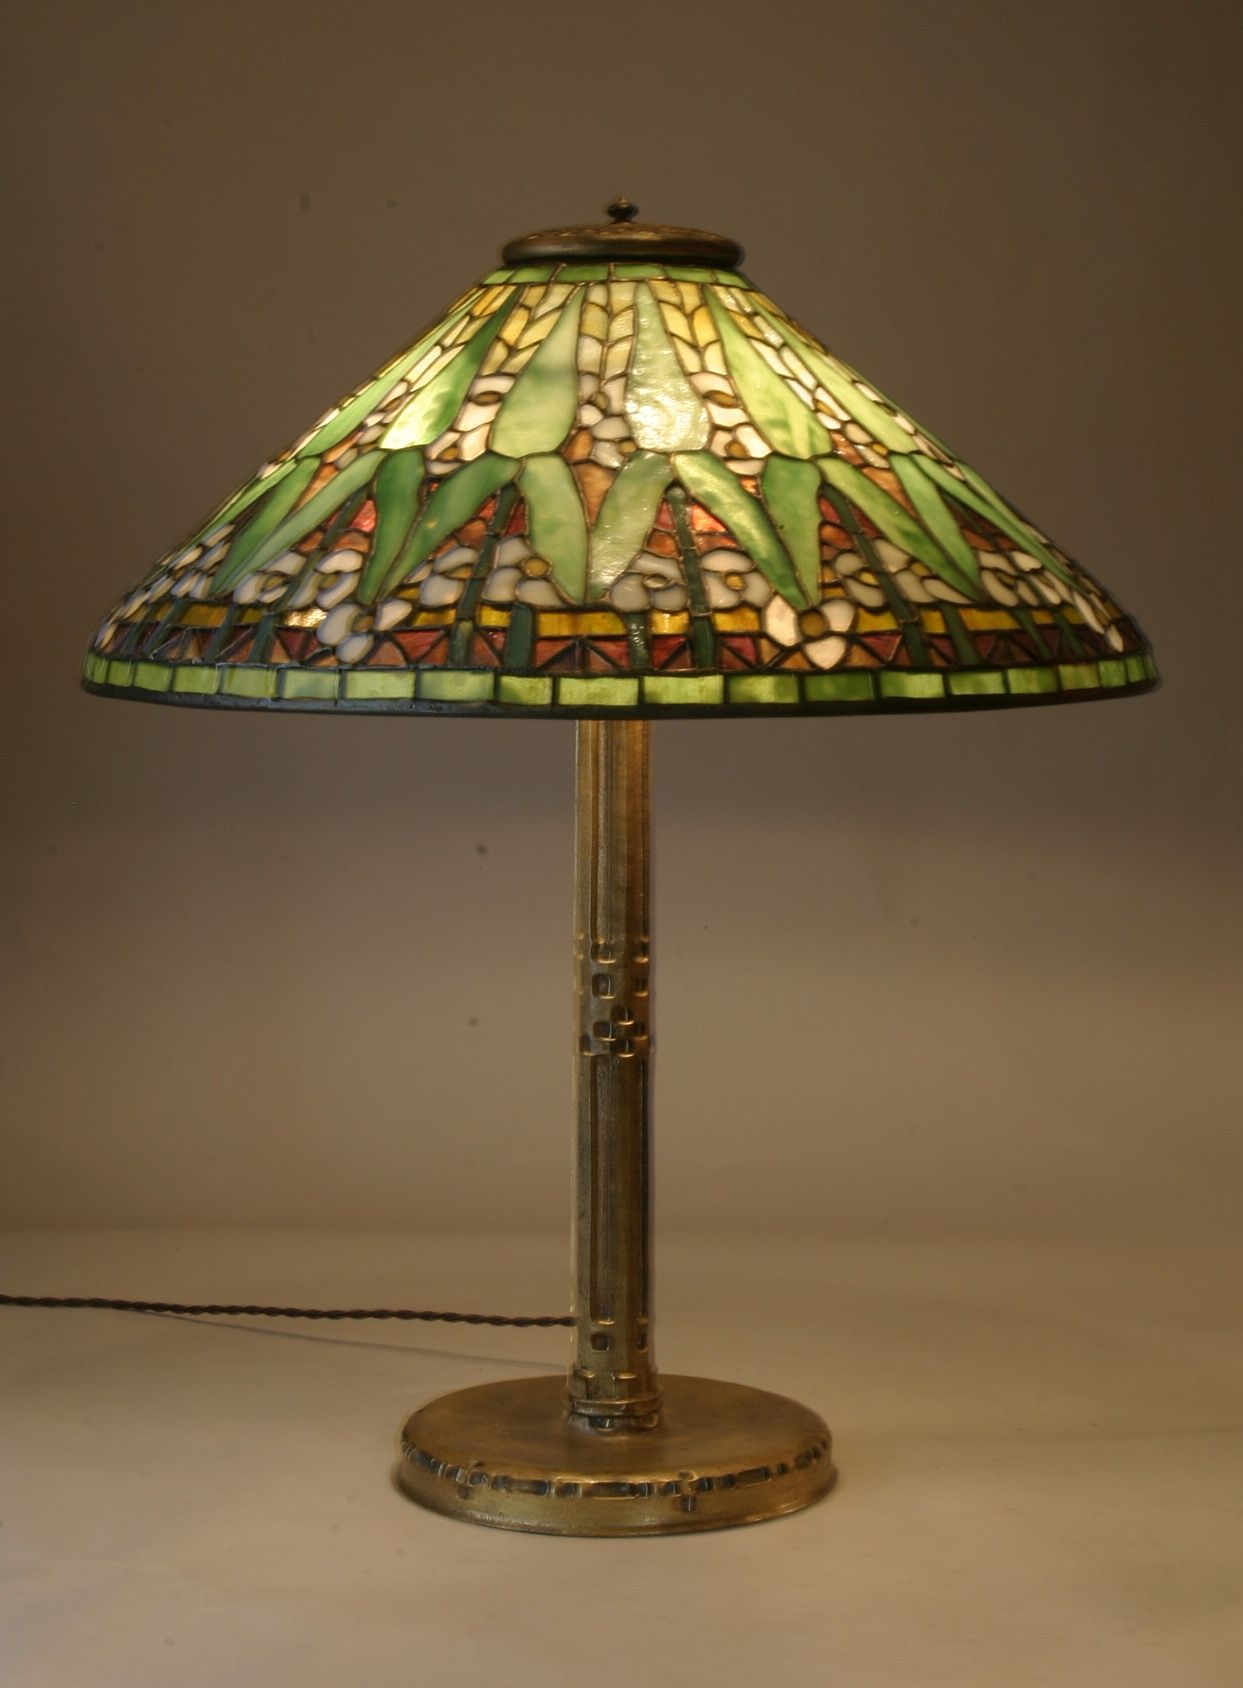 Glass Lamp Art Pin By Karen Abbott On Stained Glass Lamps Tiffany Lamps